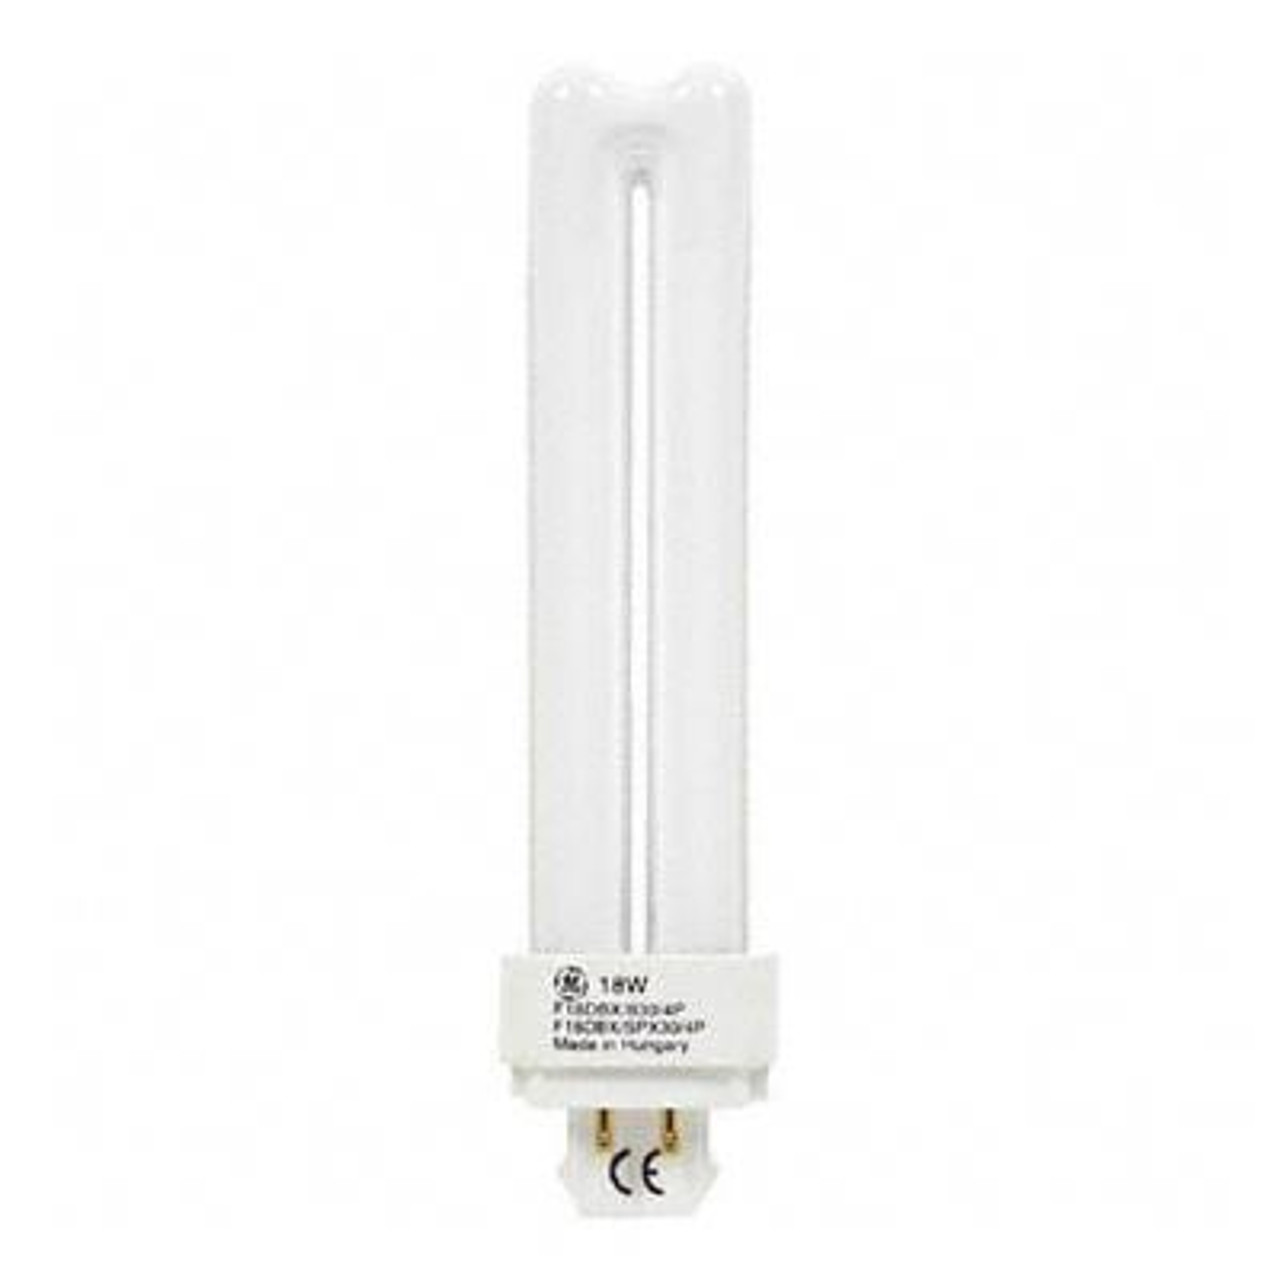 TM GE LIGHTING F13DBX//830//ECO GE Biax T4 PL Plug-In Fluorescent Light 13W